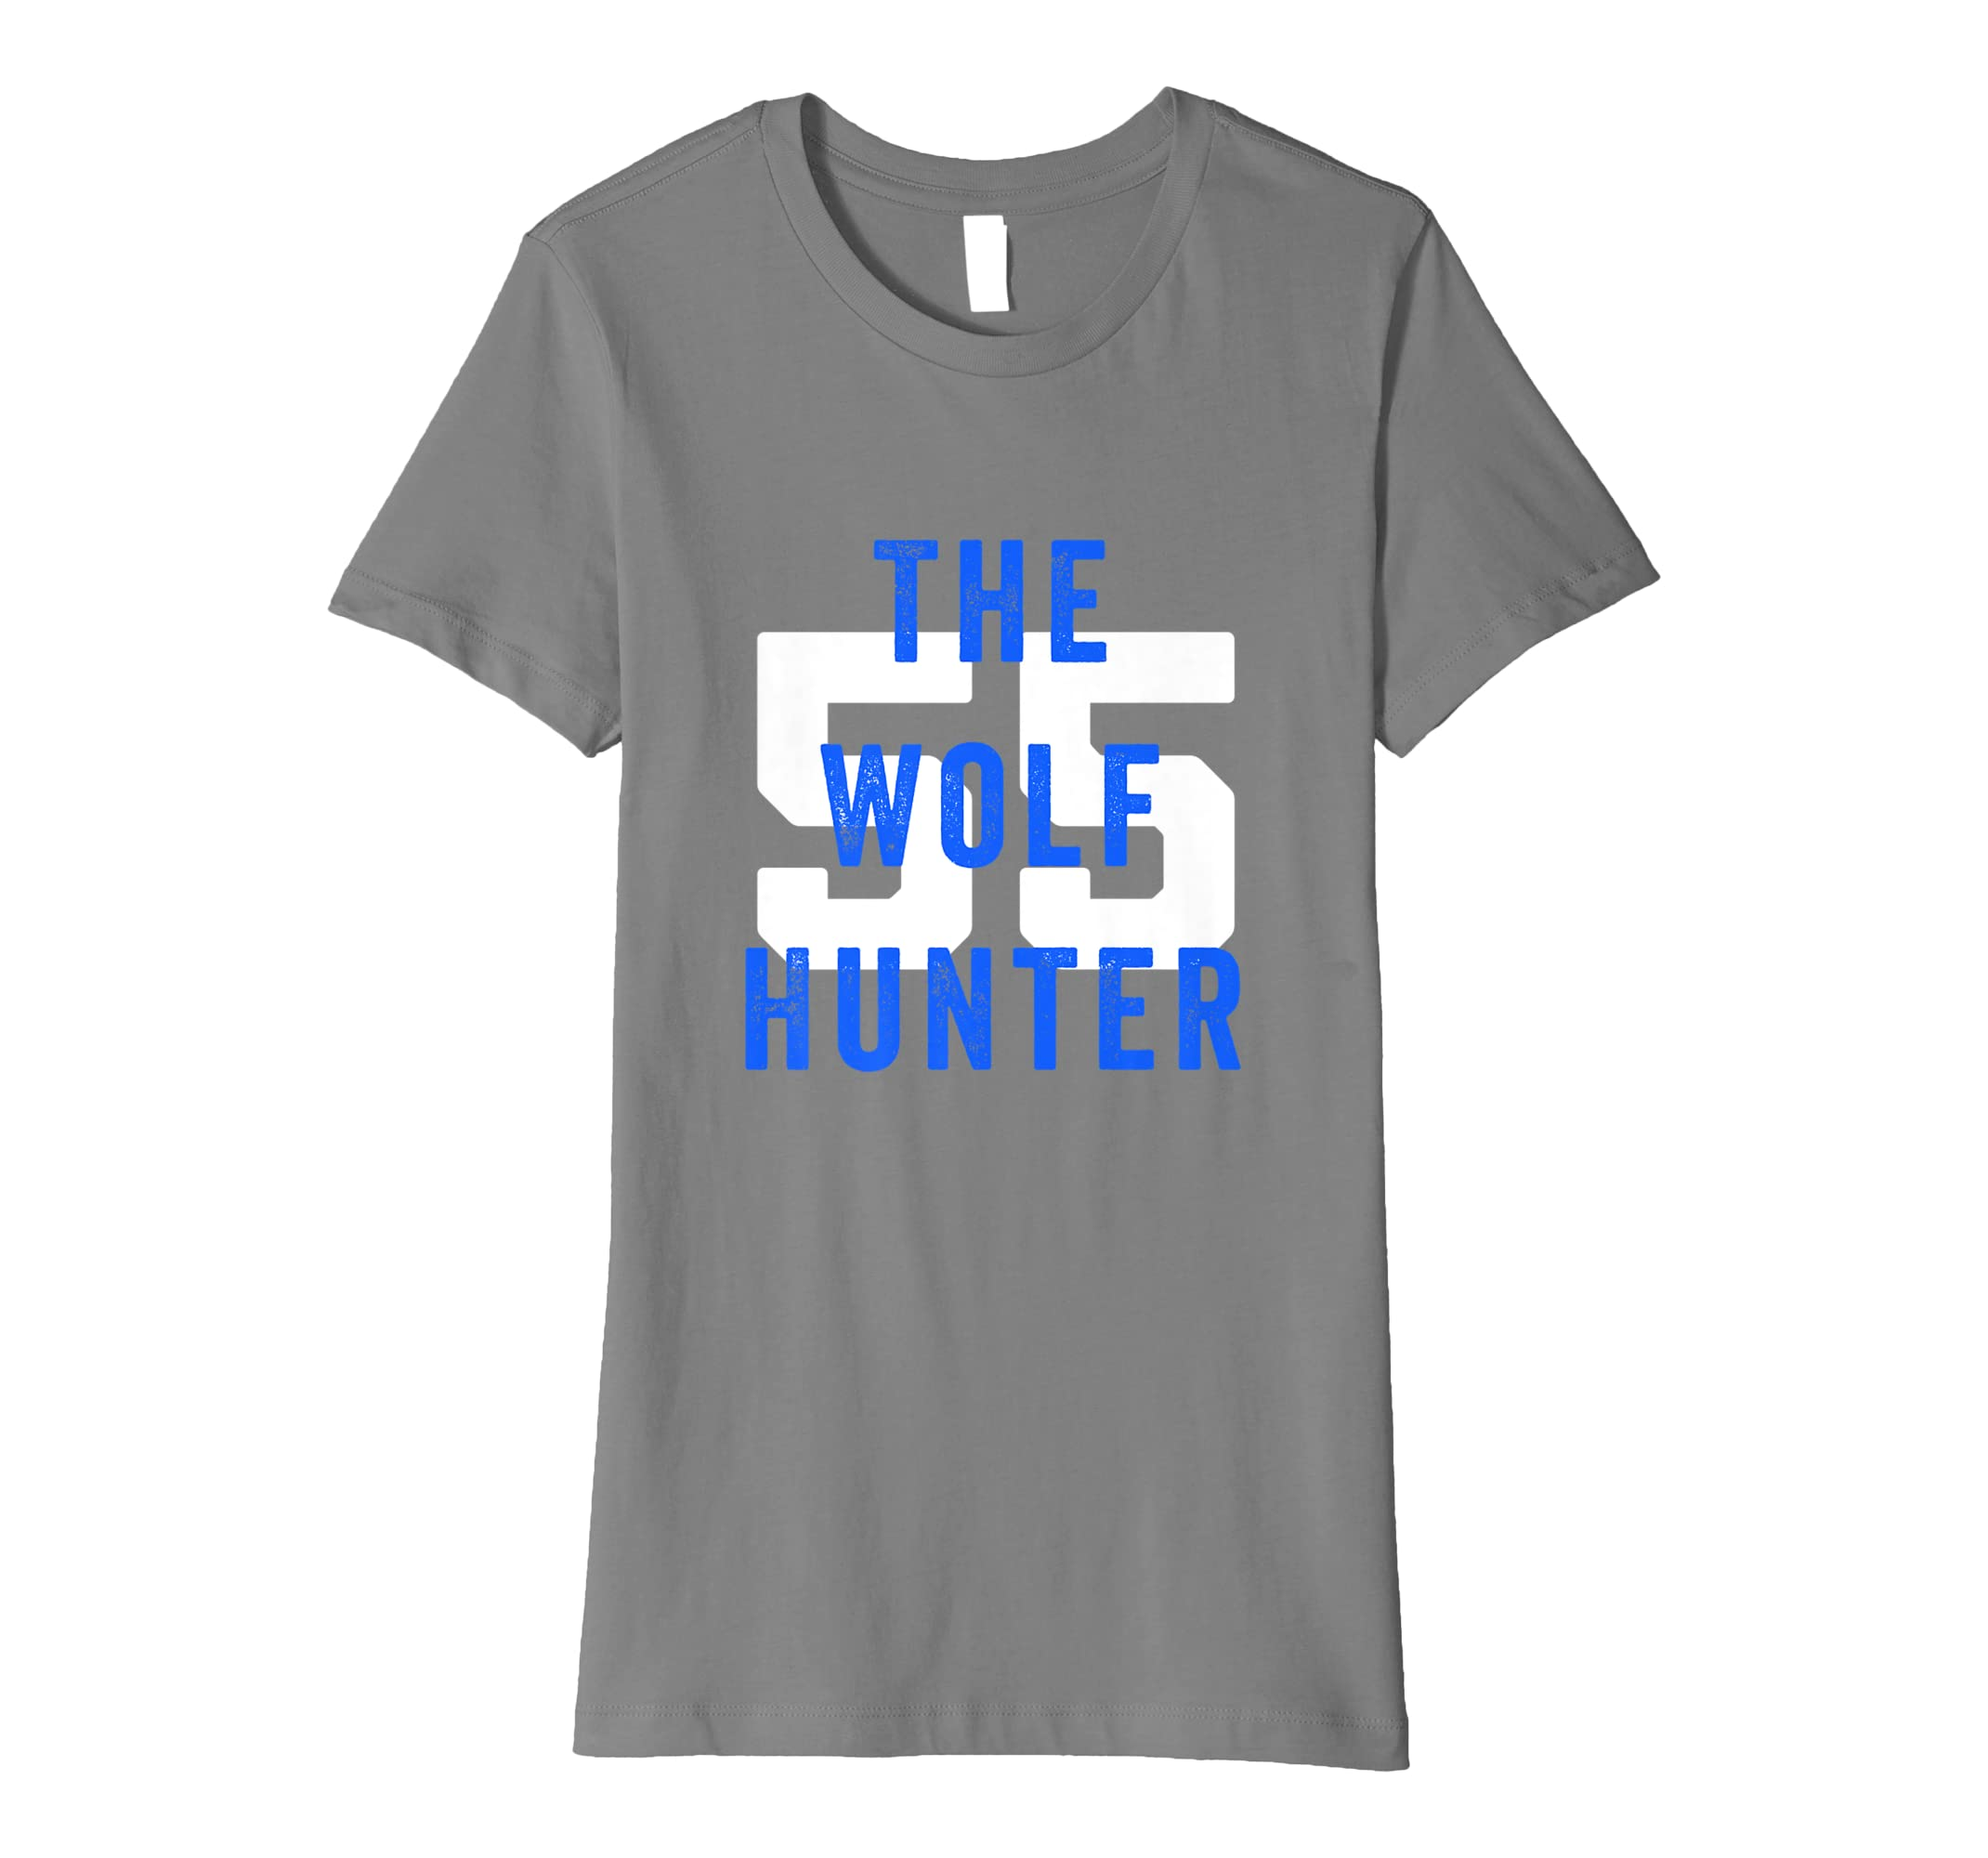 official photos 41f3d 42dc7 Amazon.com: The Cowboys wolf Hunter Vander esch t-shirt ...